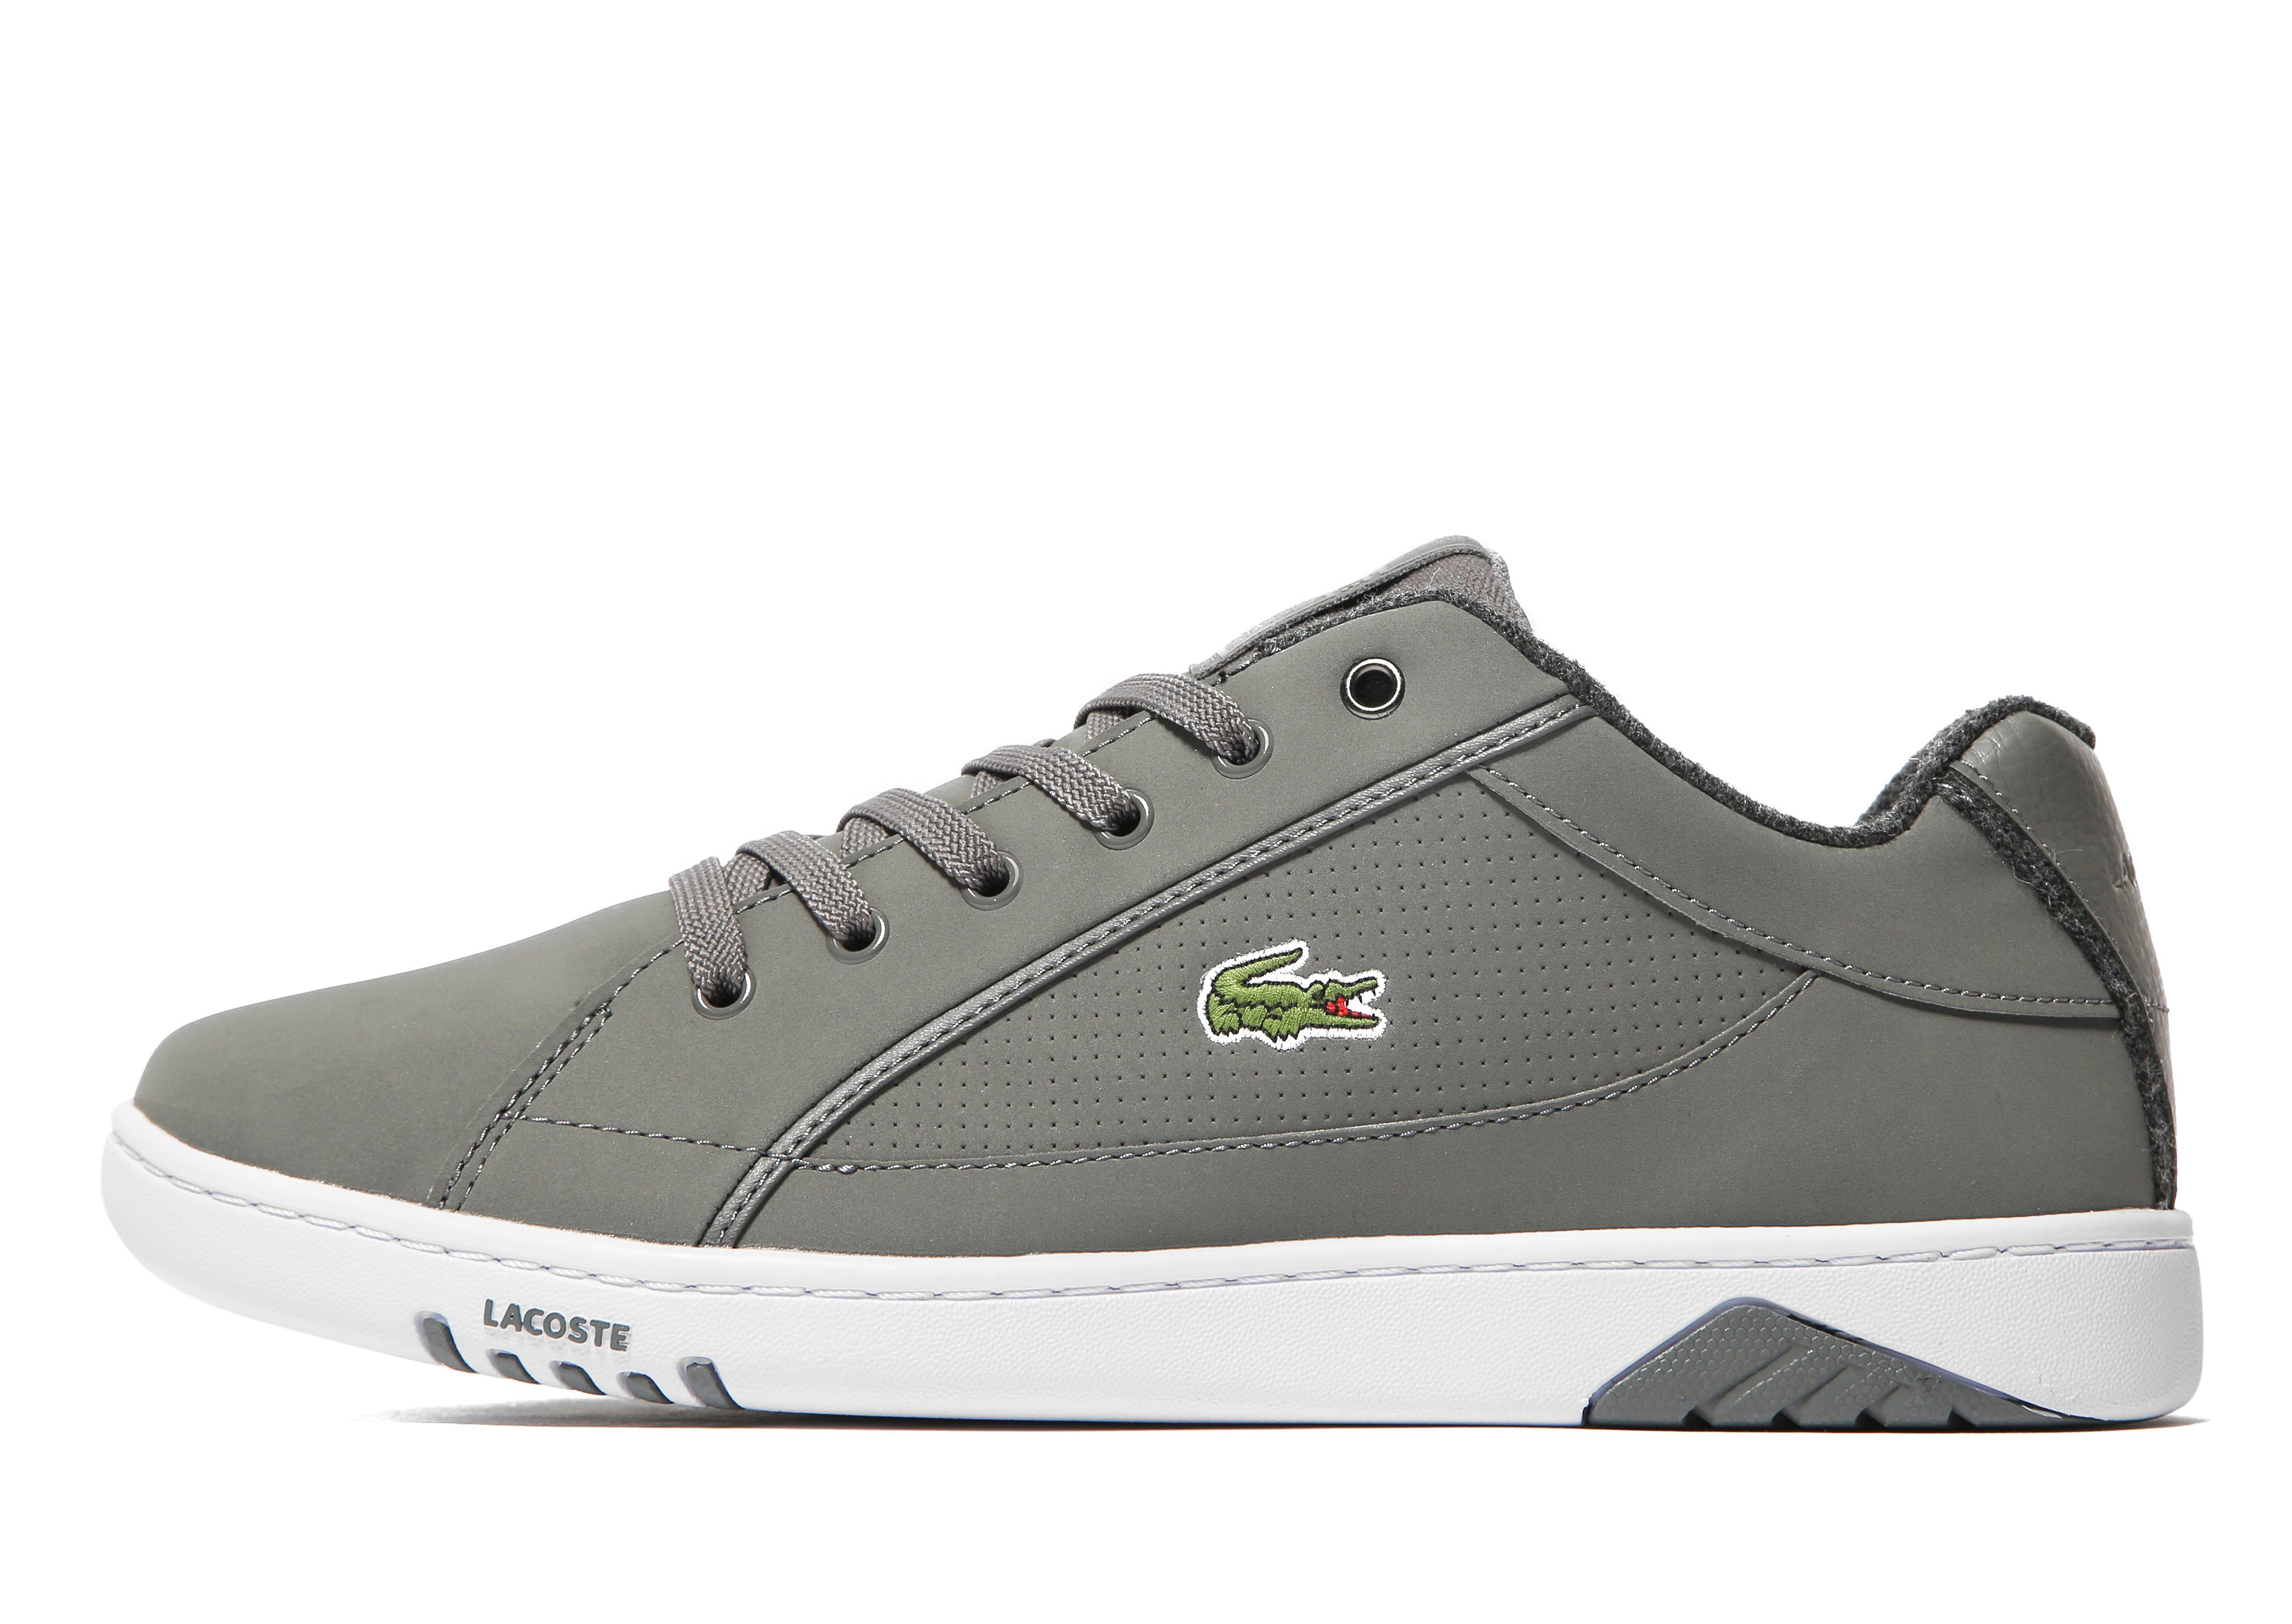 lacoste shoes jds uniphase corporation website